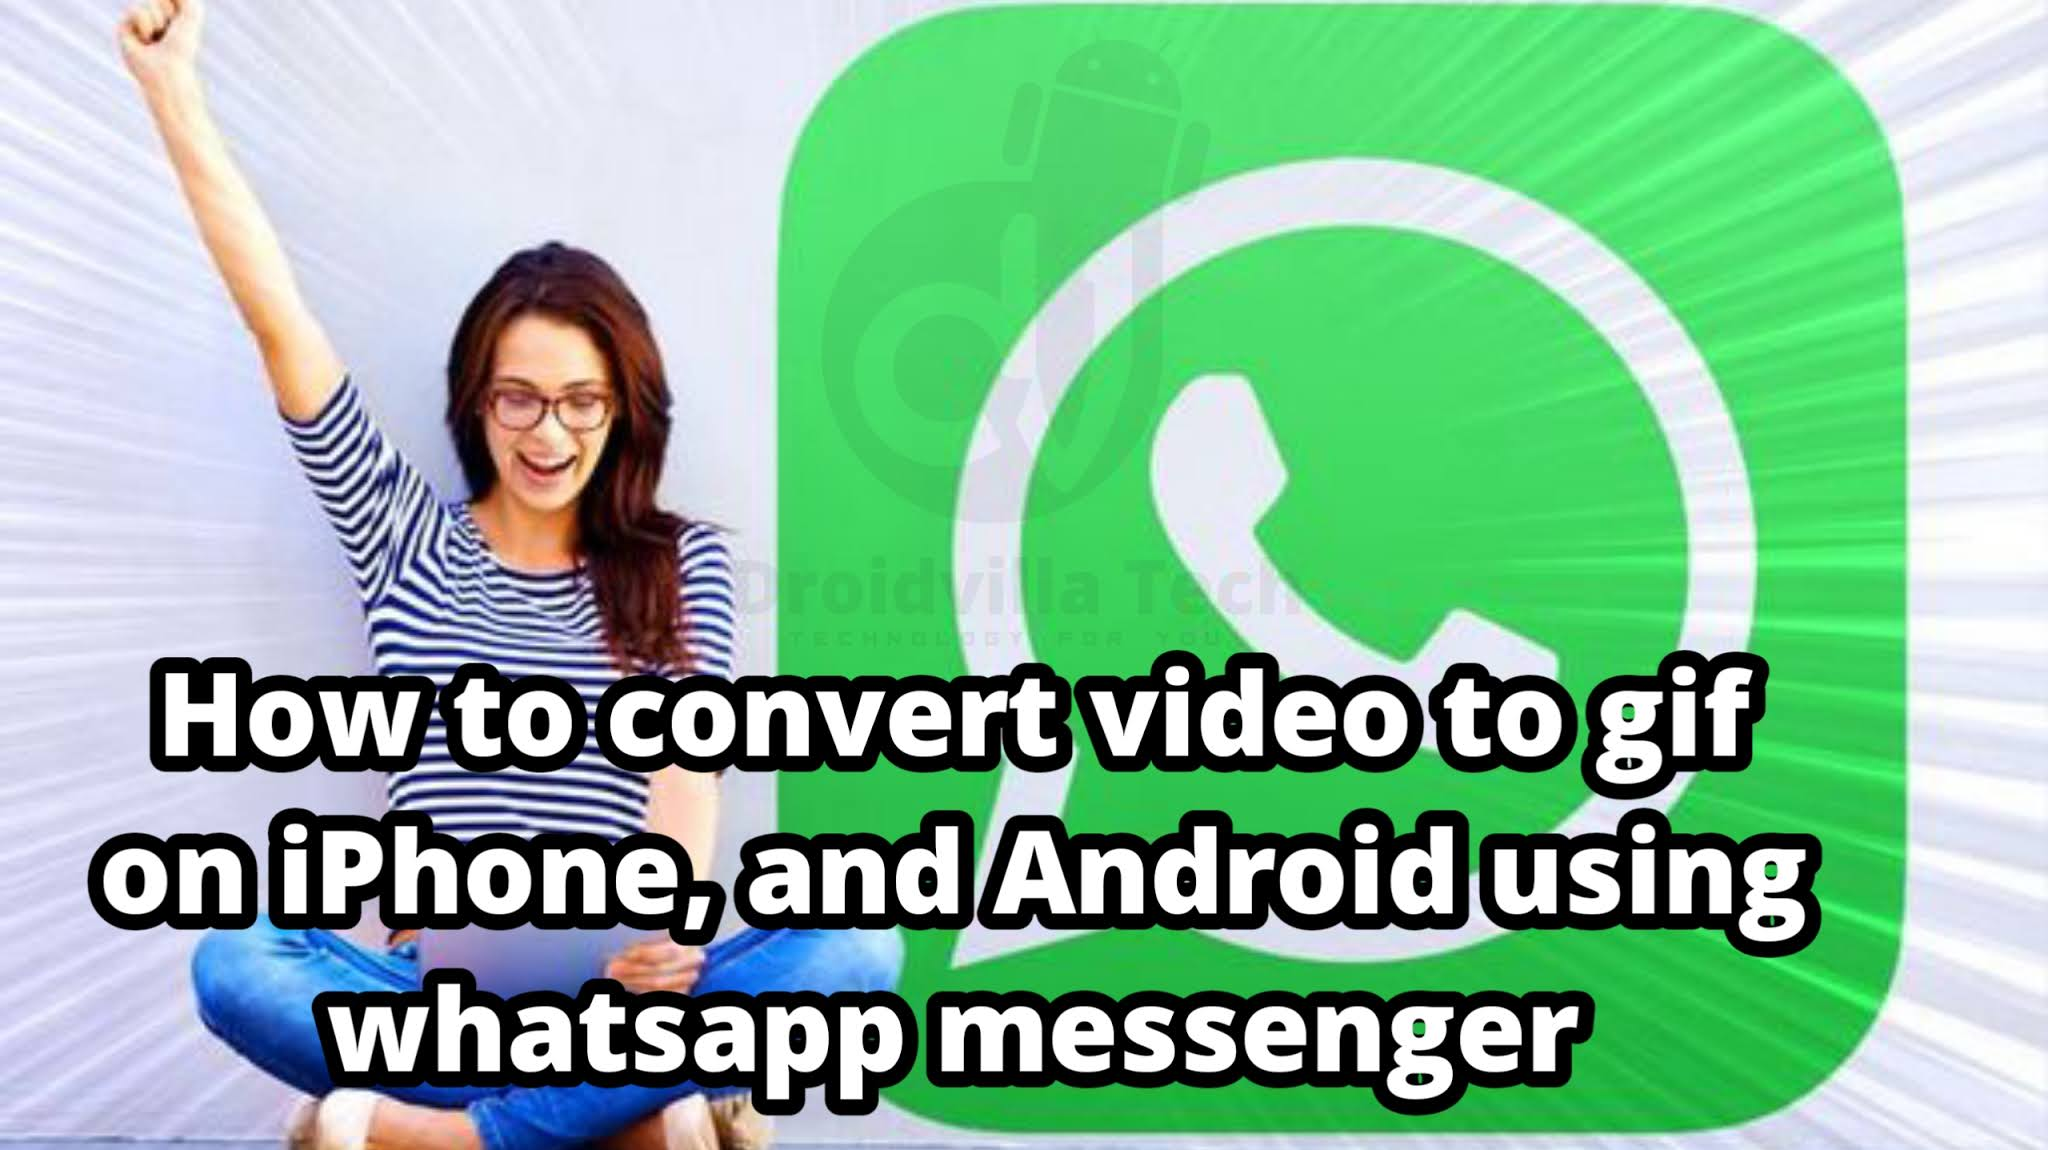 how-to-convert-video-to-gif-on-iphone-and-android-without-thirdparty-app-droidvilla-tech